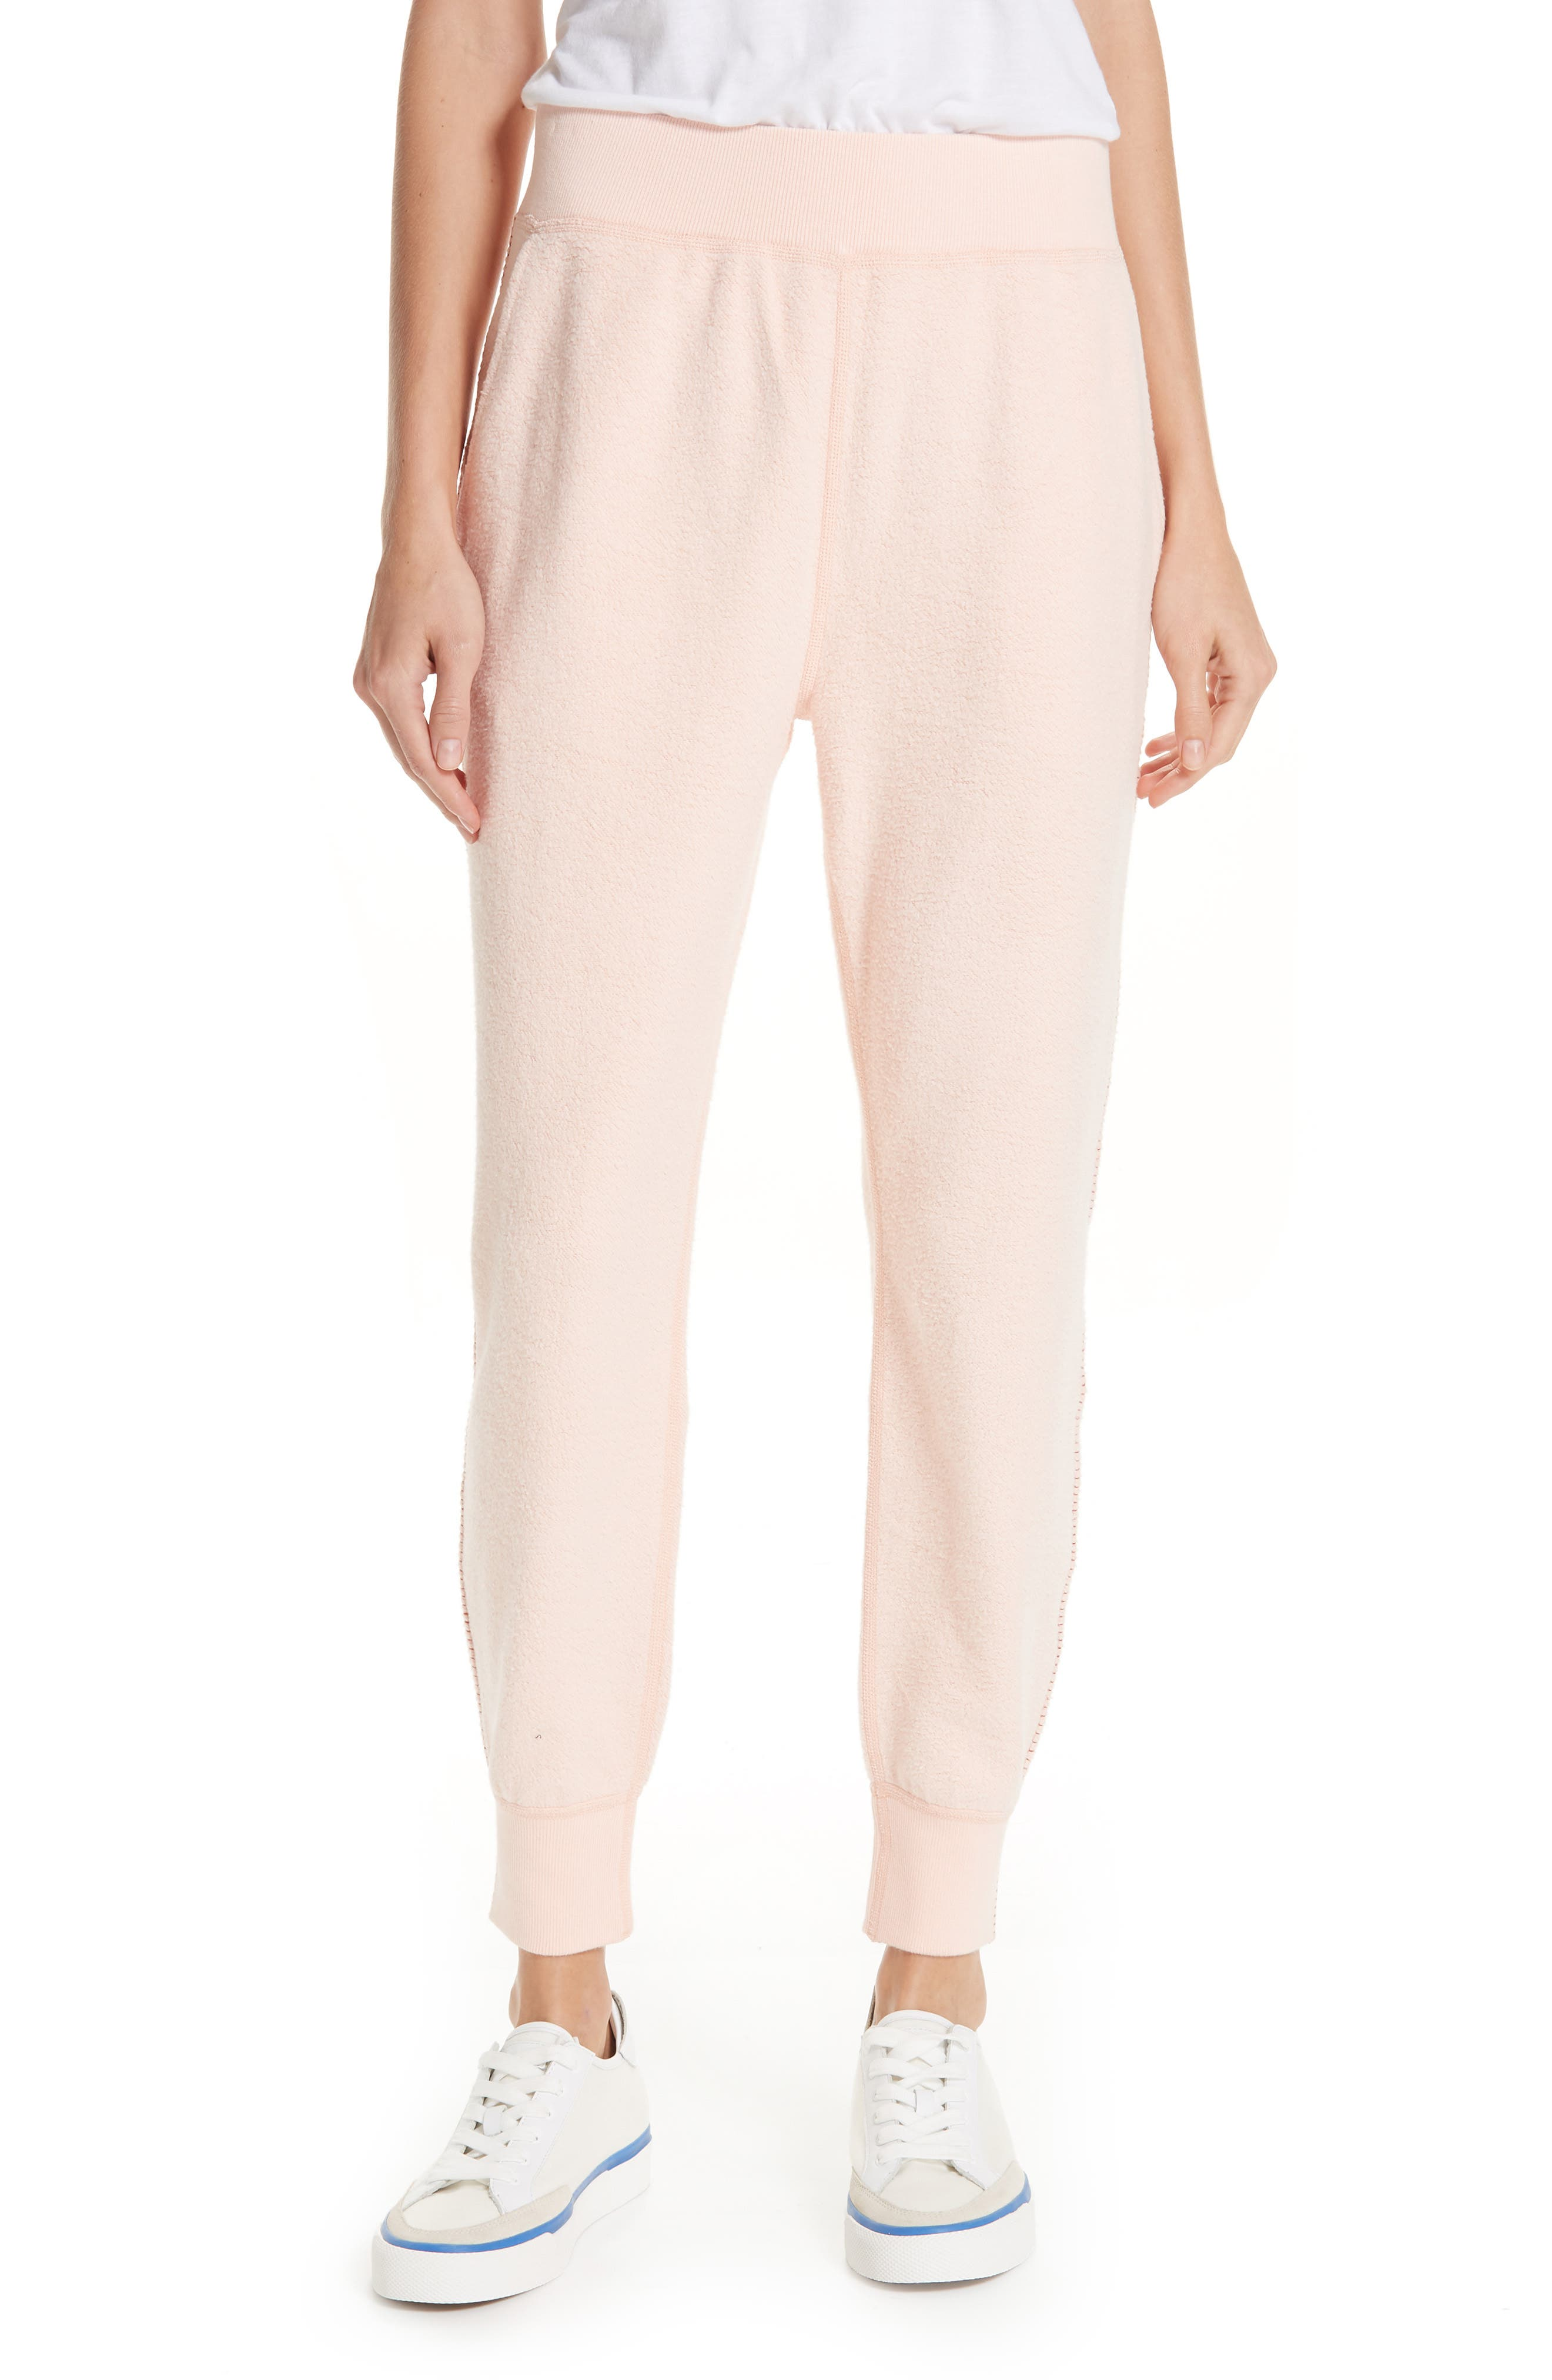 rag & bone Inside Out Brushed Terry Pants,                             Main thumbnail 1, color,                             666